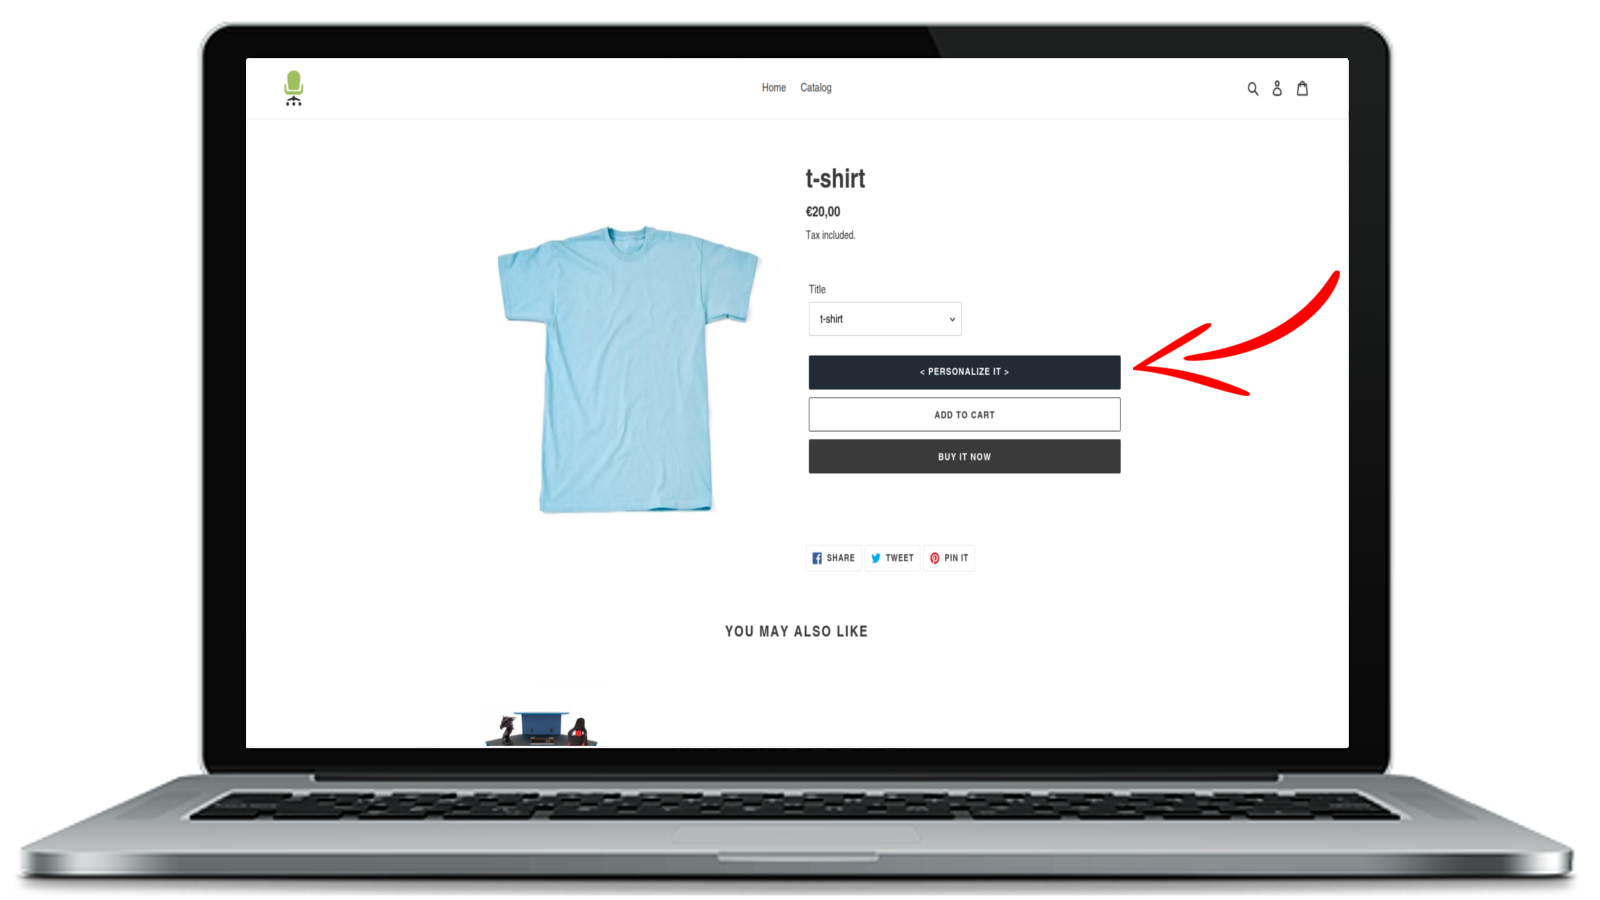 Access to the configurator